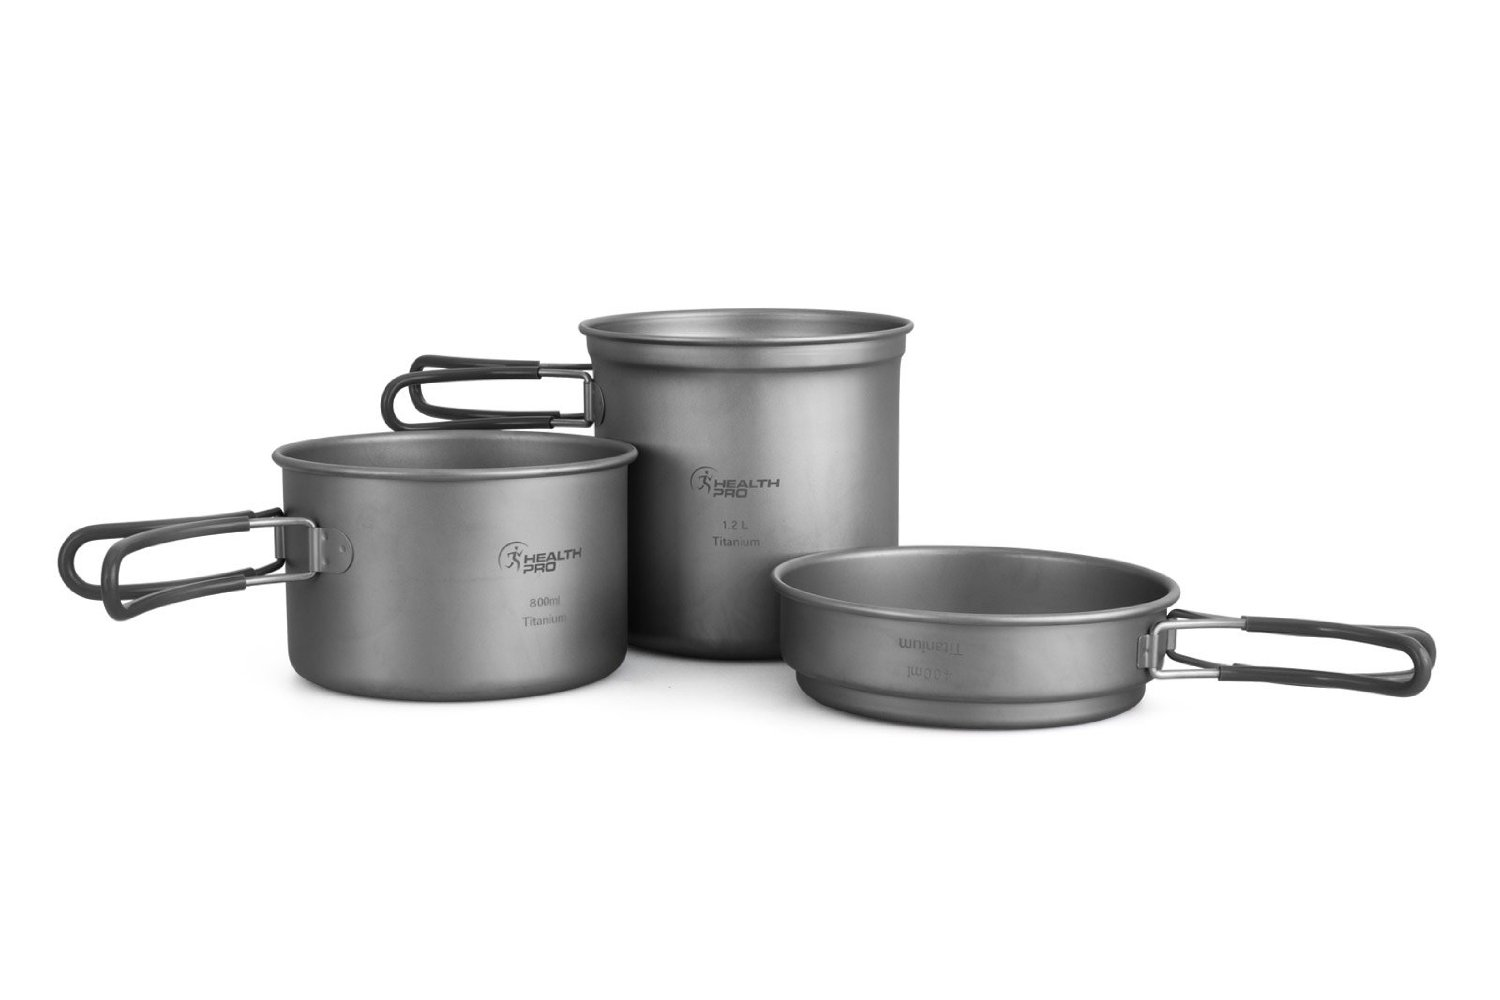 HealthPro Titanium Lightweight 3-Piece (1.2L, 800ml, 400ml) Pot and Pan Camping Hiking Mess Kit Cookware Set by HealthPro